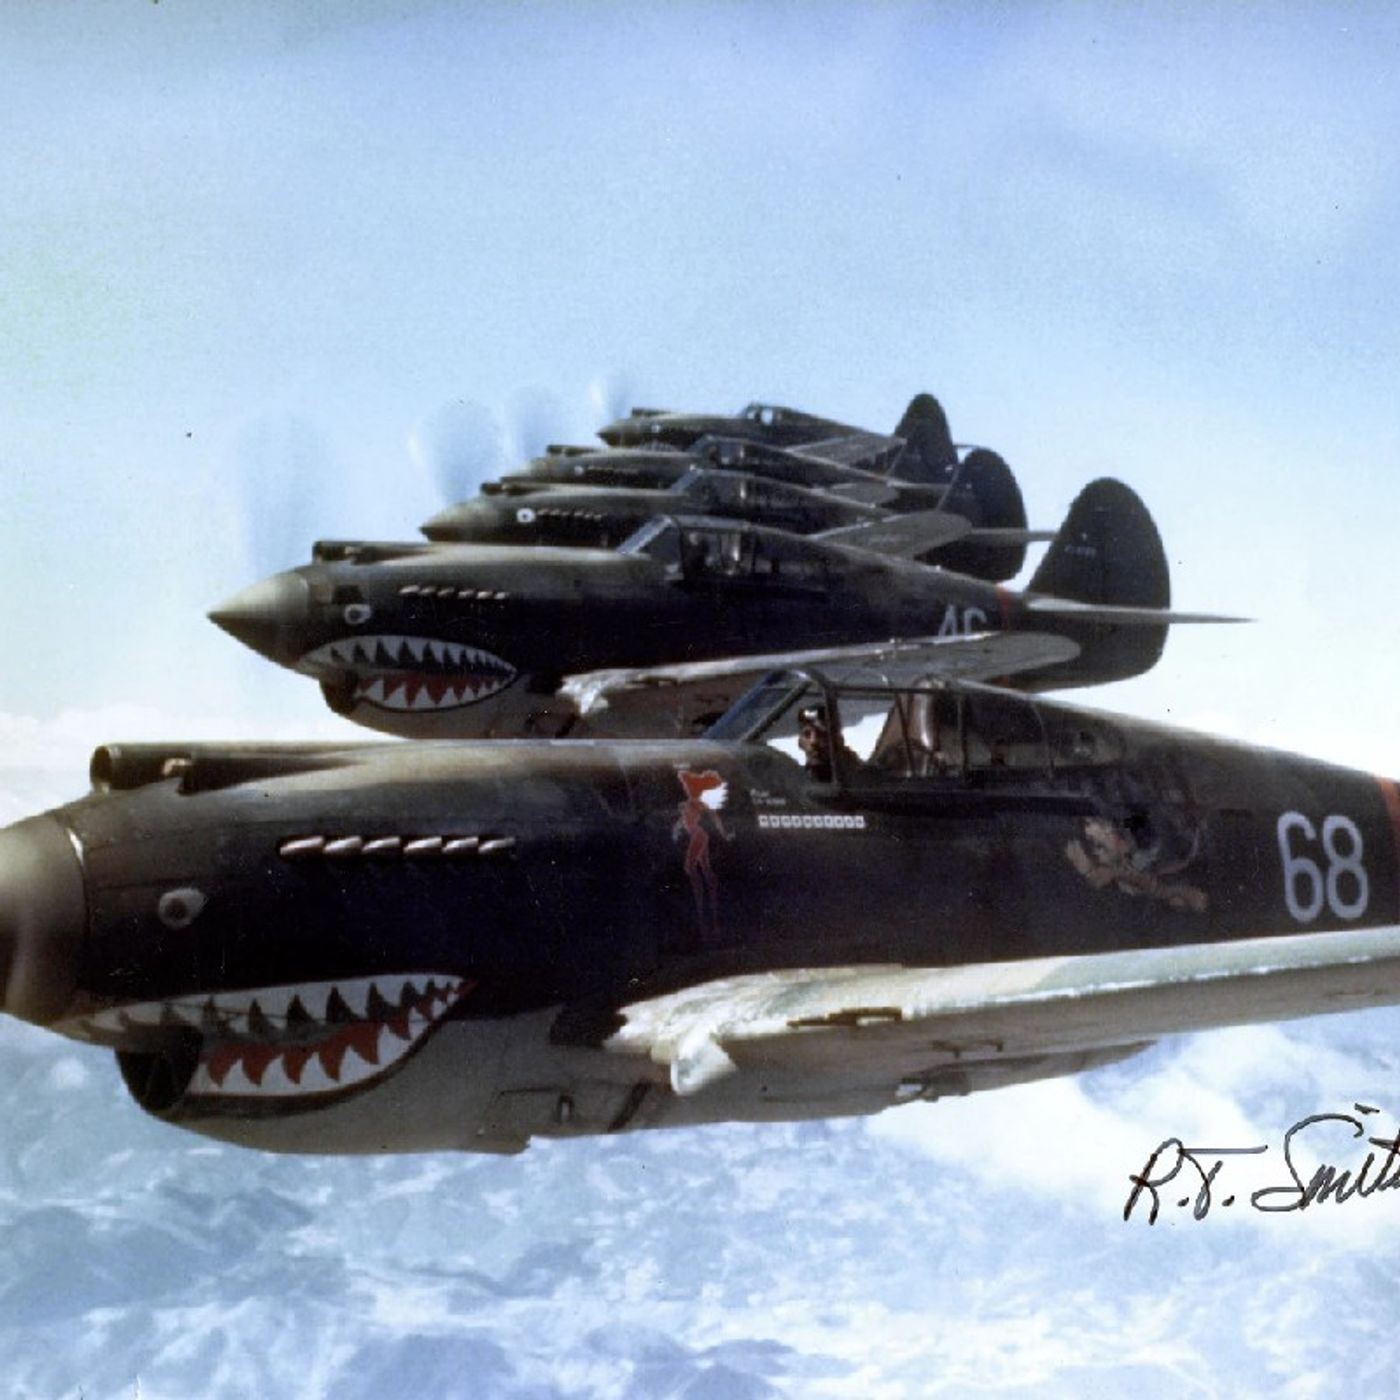 Episode 1322 - The Flying Tigers of World War II & 10-Year Old Boy Spots Woman Drowning